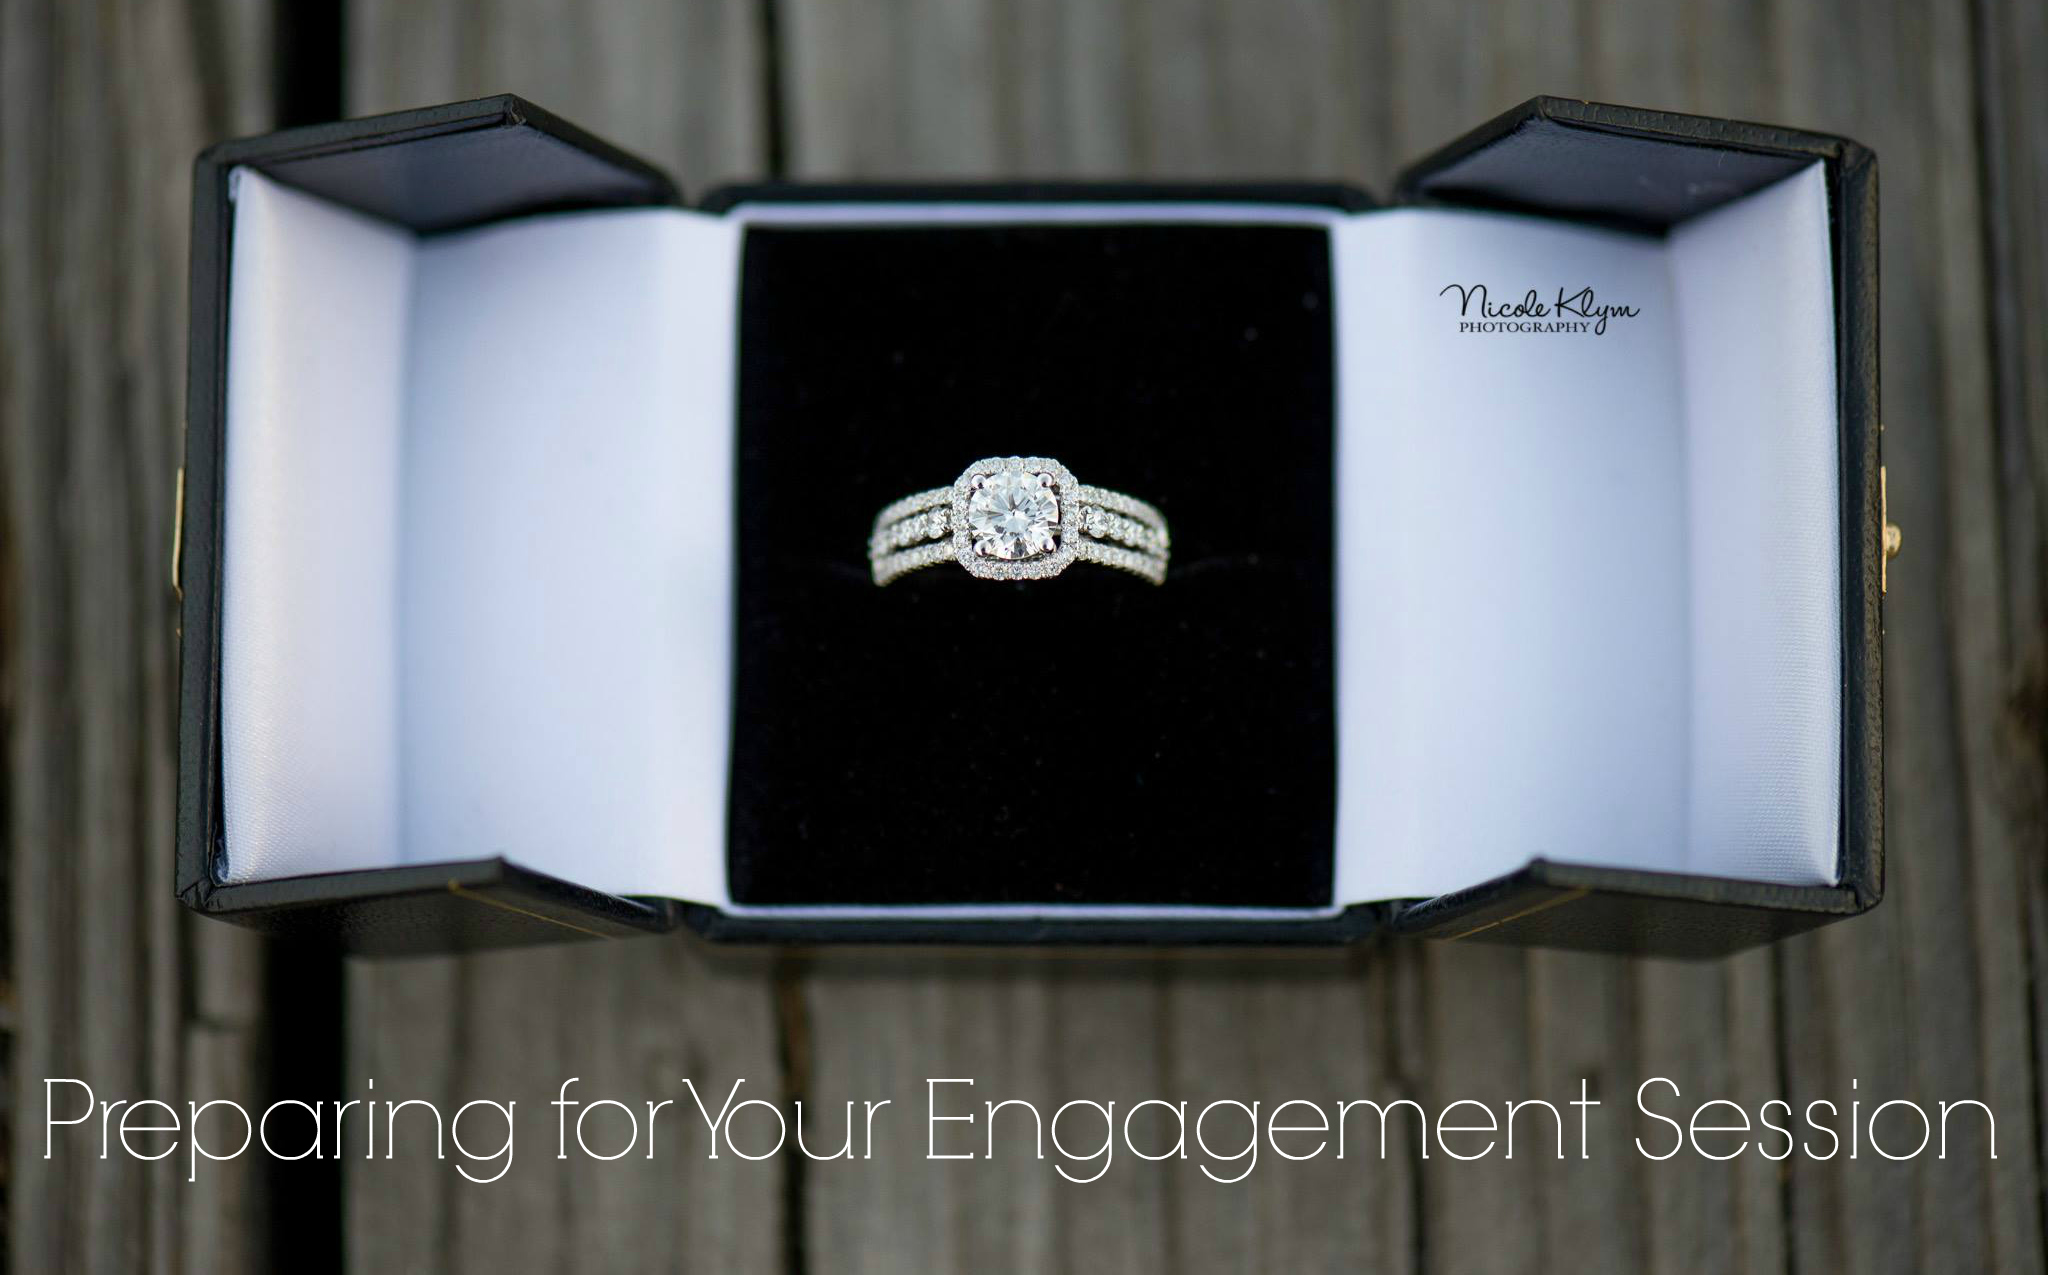 Preparing for Your Engagement Session | Nicole Klym Photography